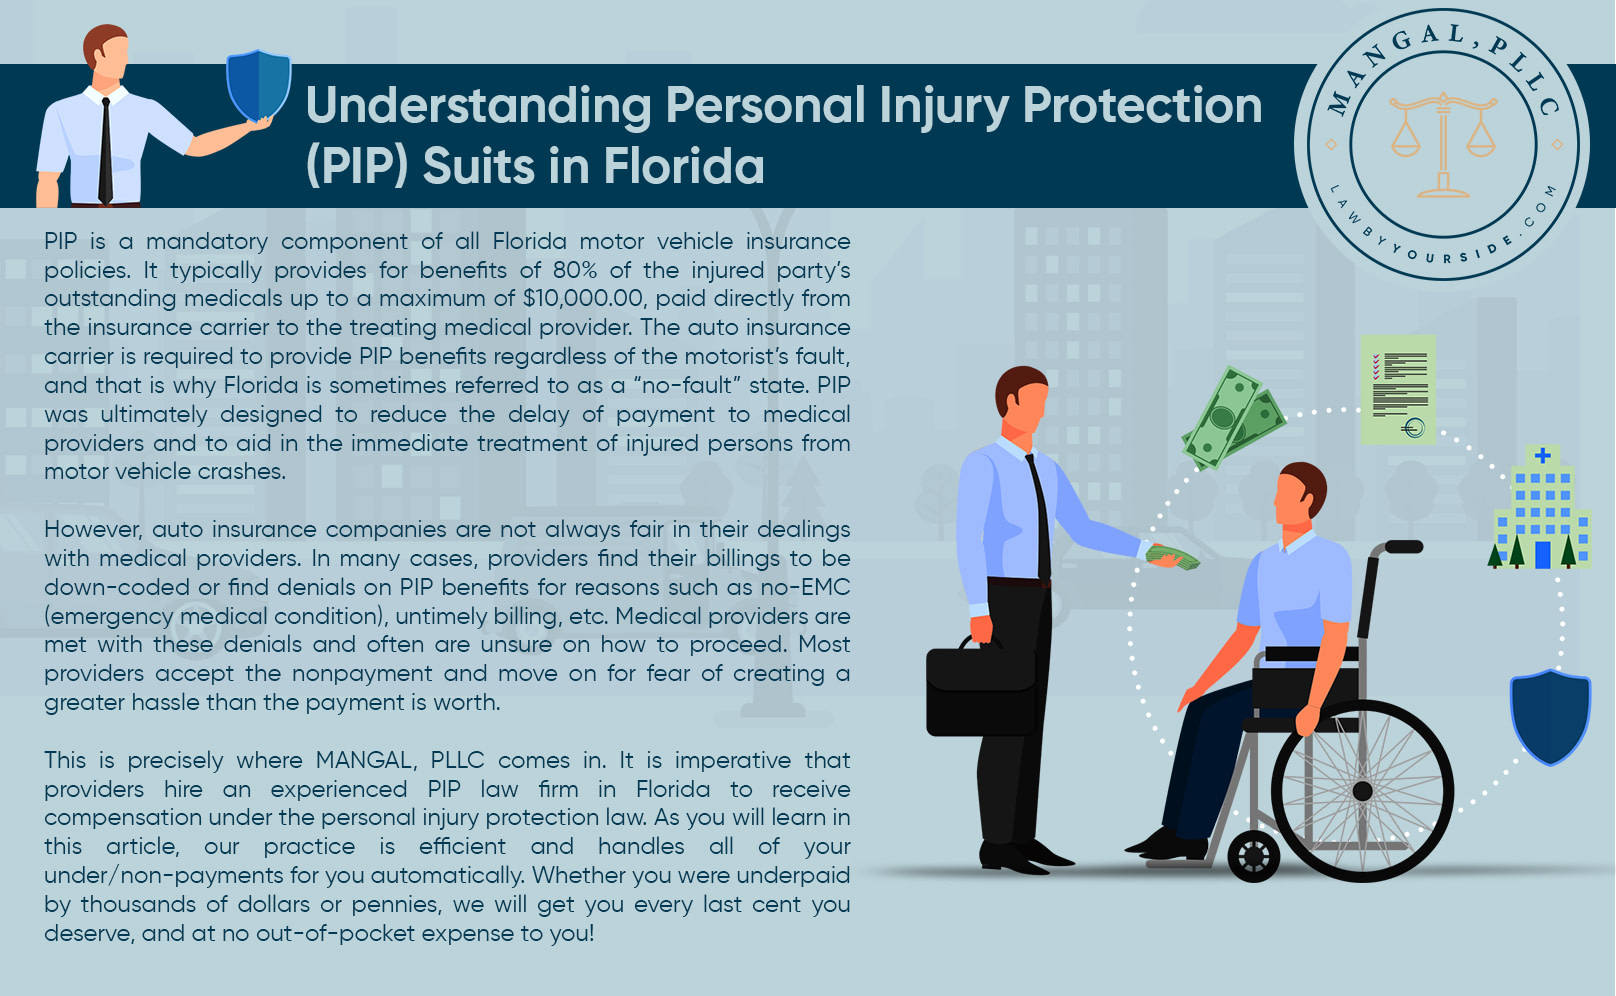 PIP-Lawsuits-for-Medical-Providers